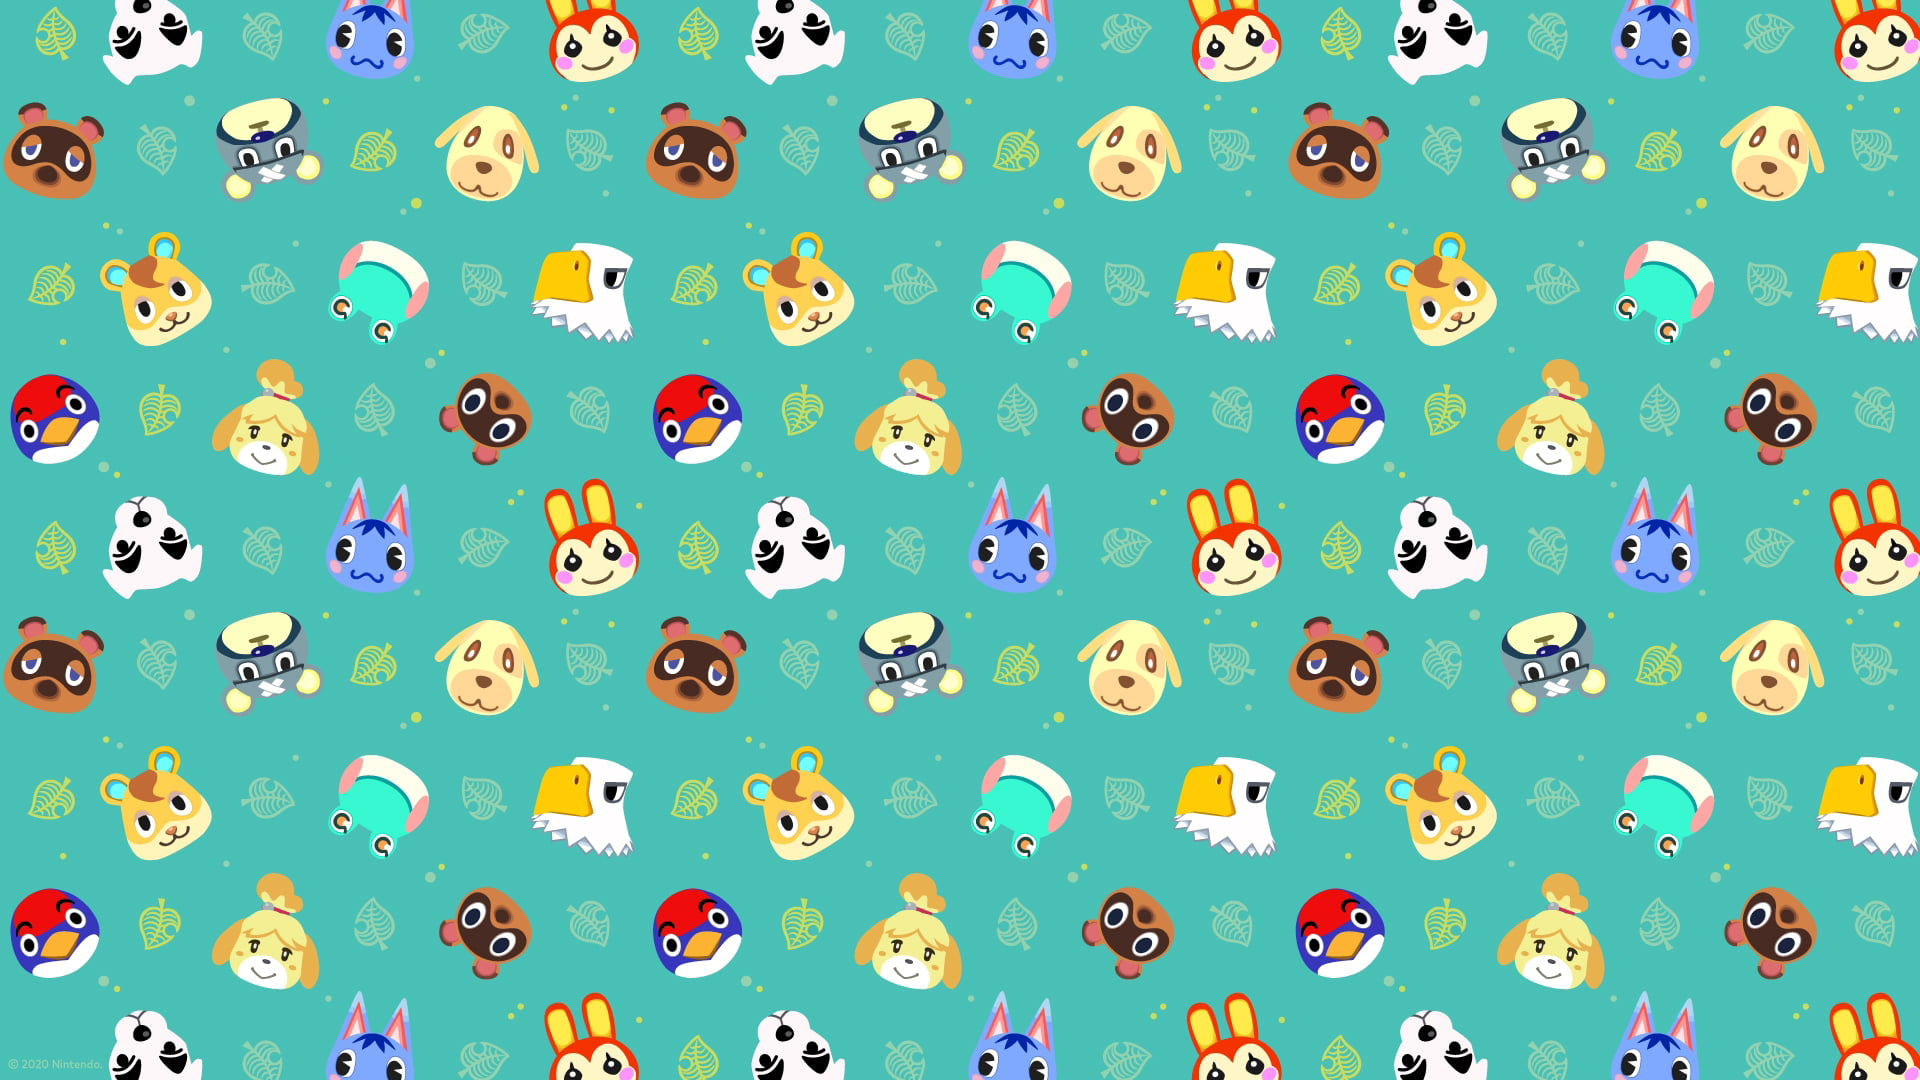 Download Three Cute Animal Crossing New Horizons Wallpapers From Walmart Nintendosoup